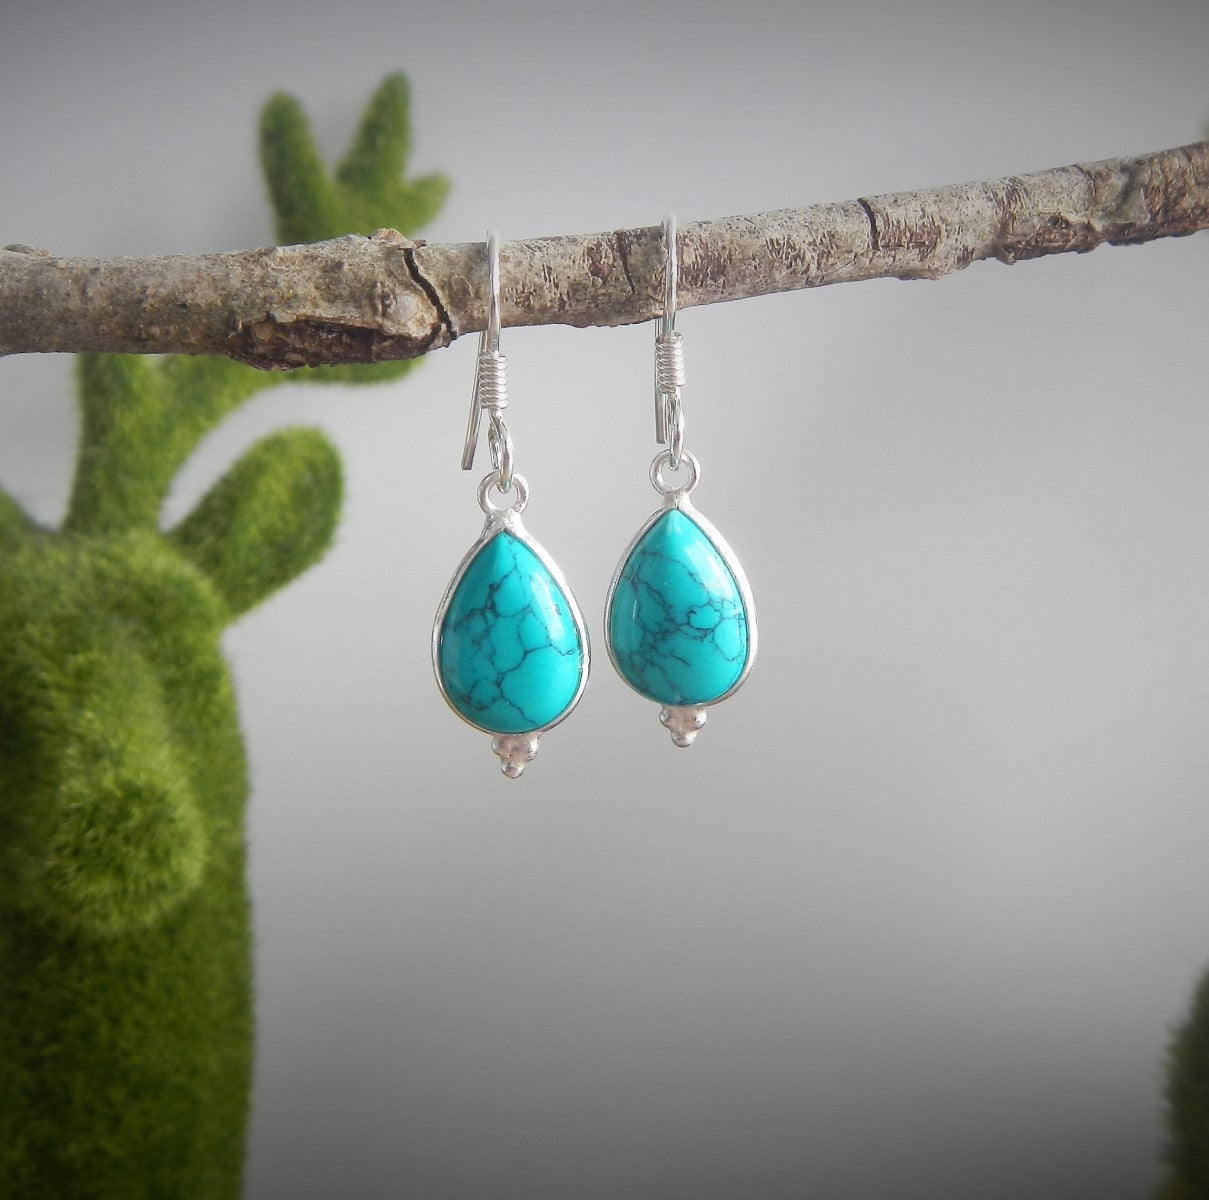 Turquoise & 925 Sterling Silver Earrings.